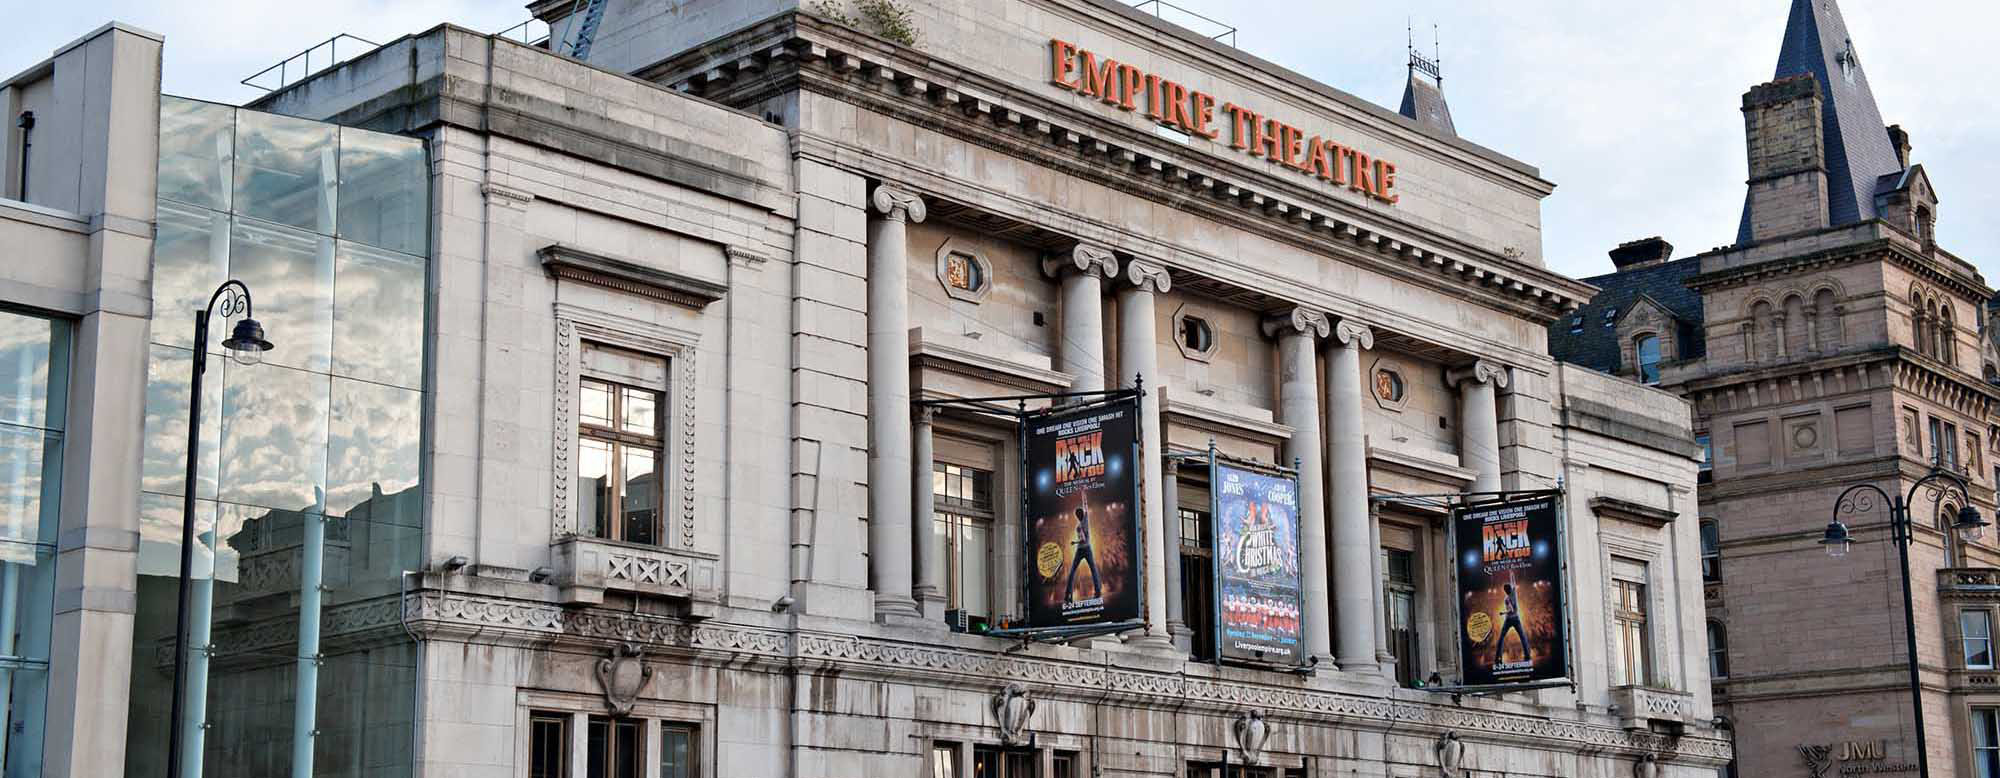 empire-theatre3